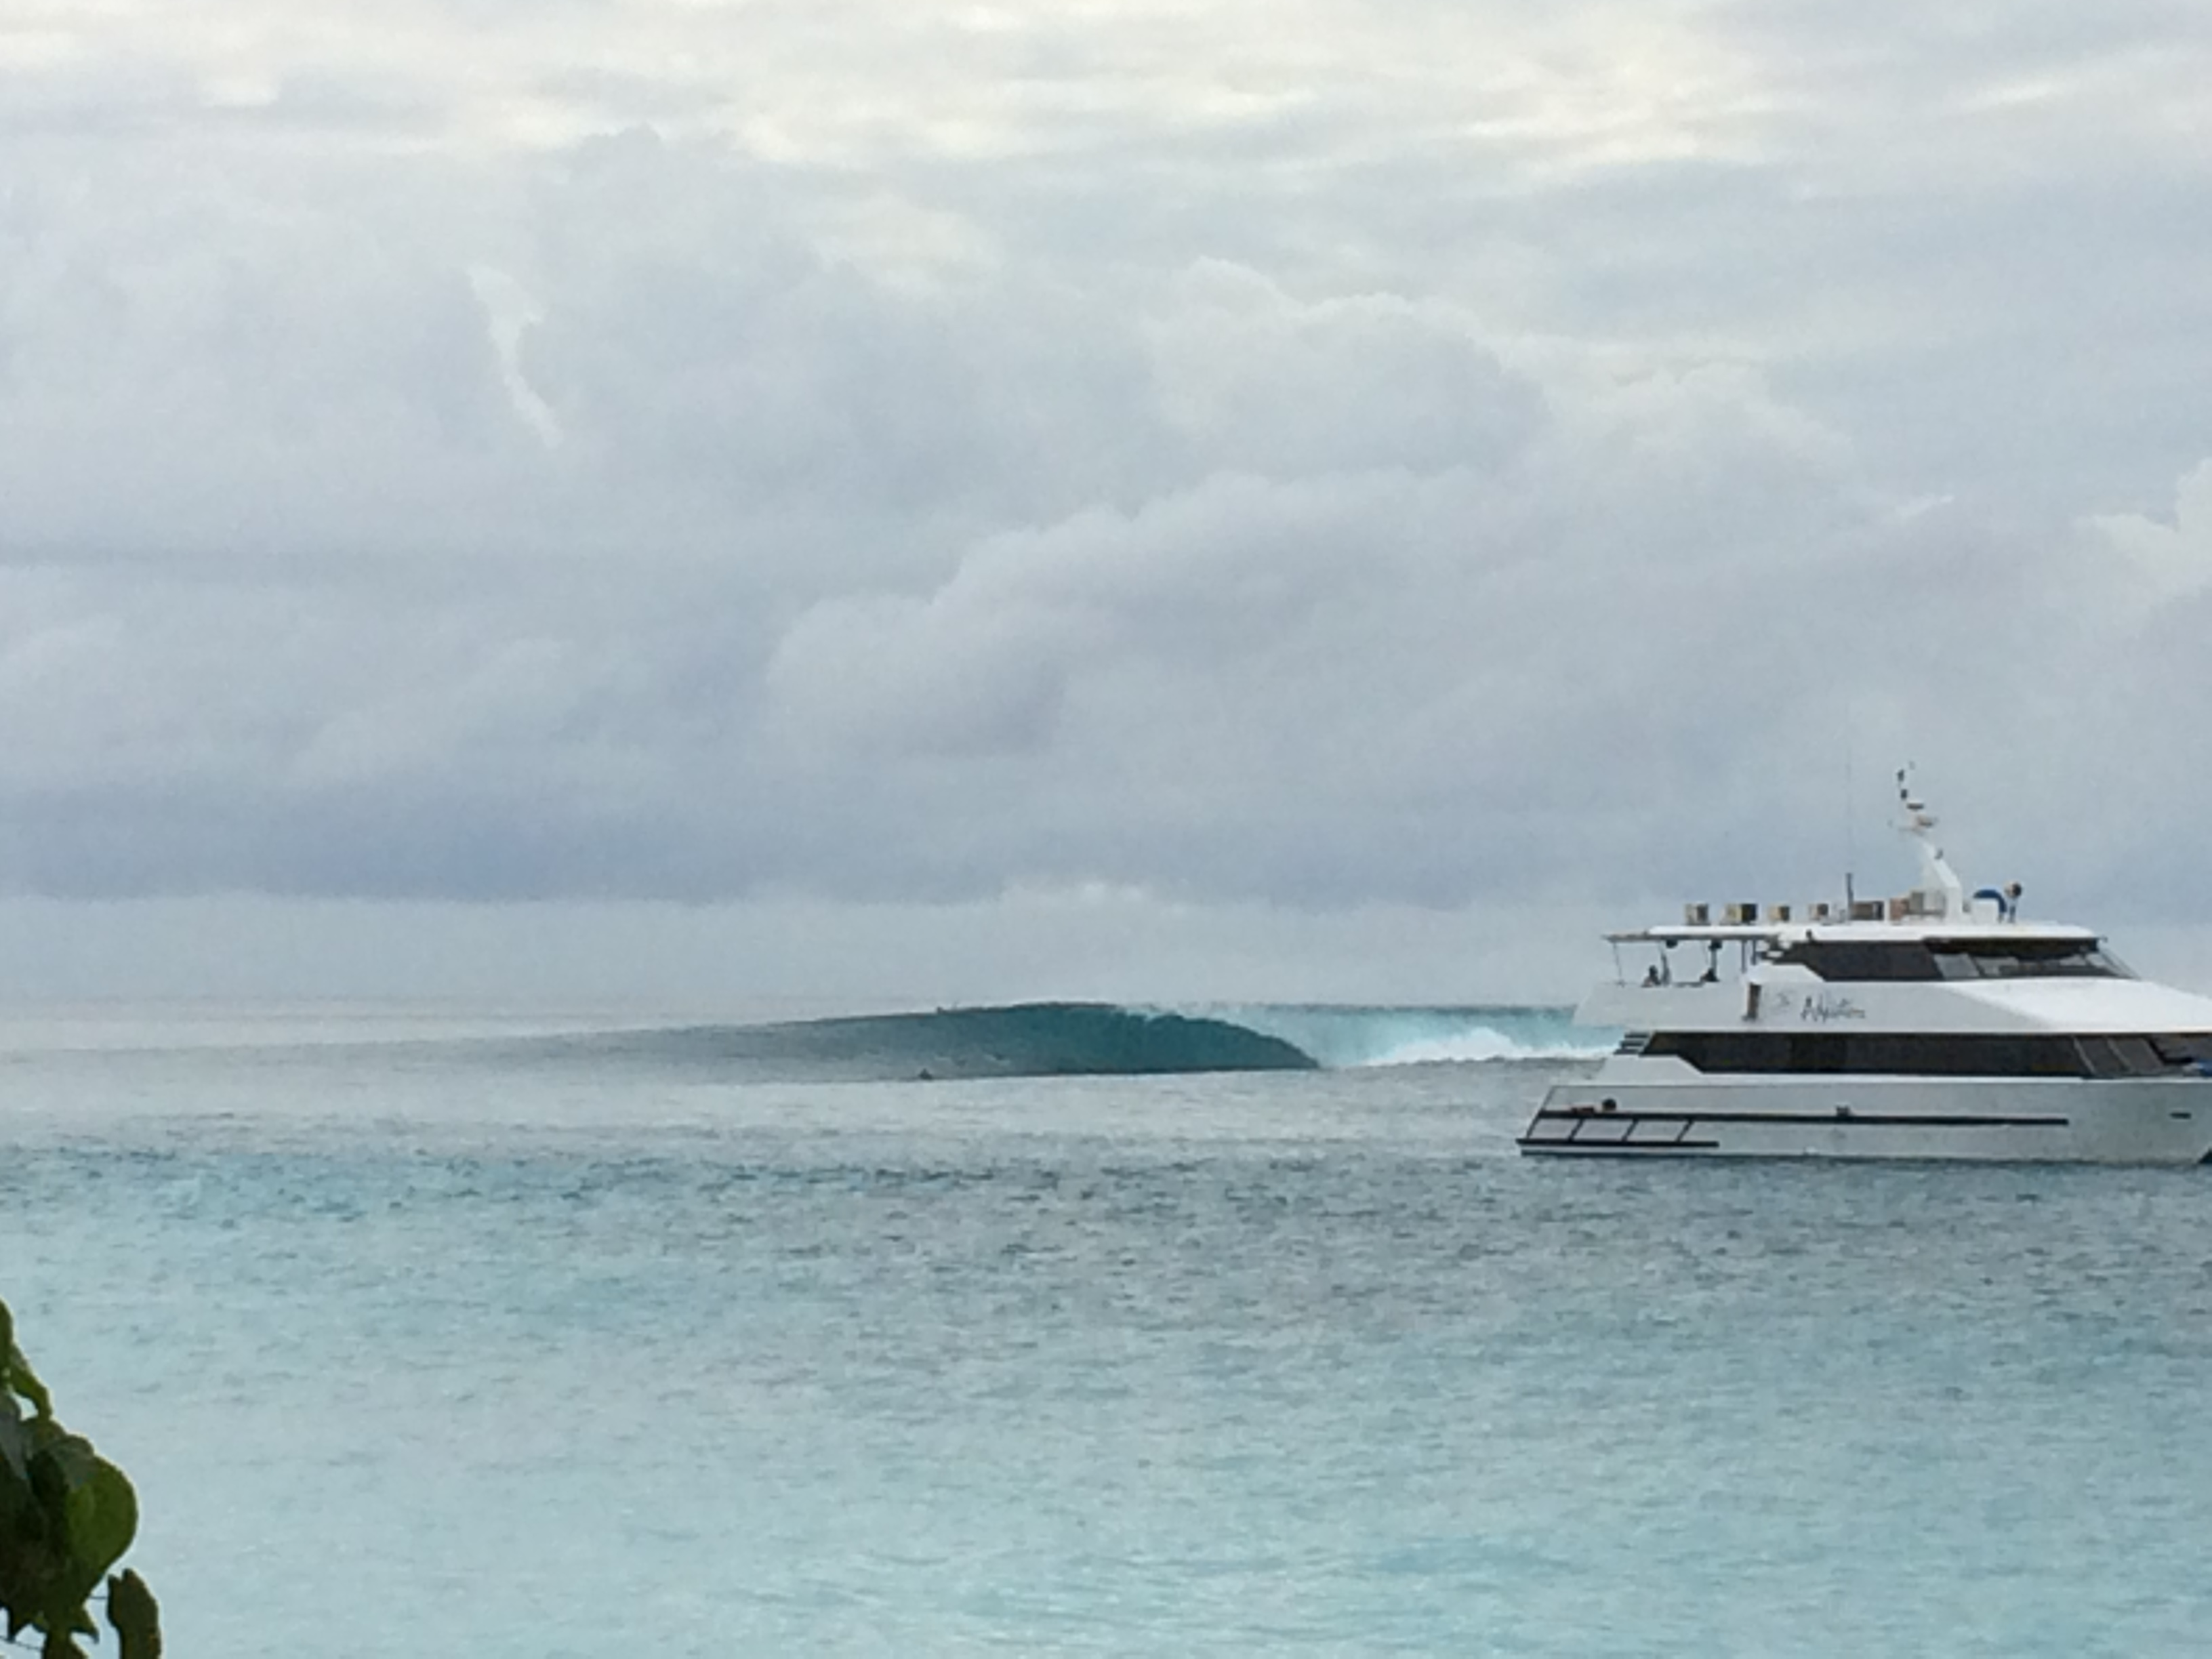 You could score waves like this by boat (pictured here) or by land, just kind of depends on your budget...and sea legs. Photo: Beau Flemister